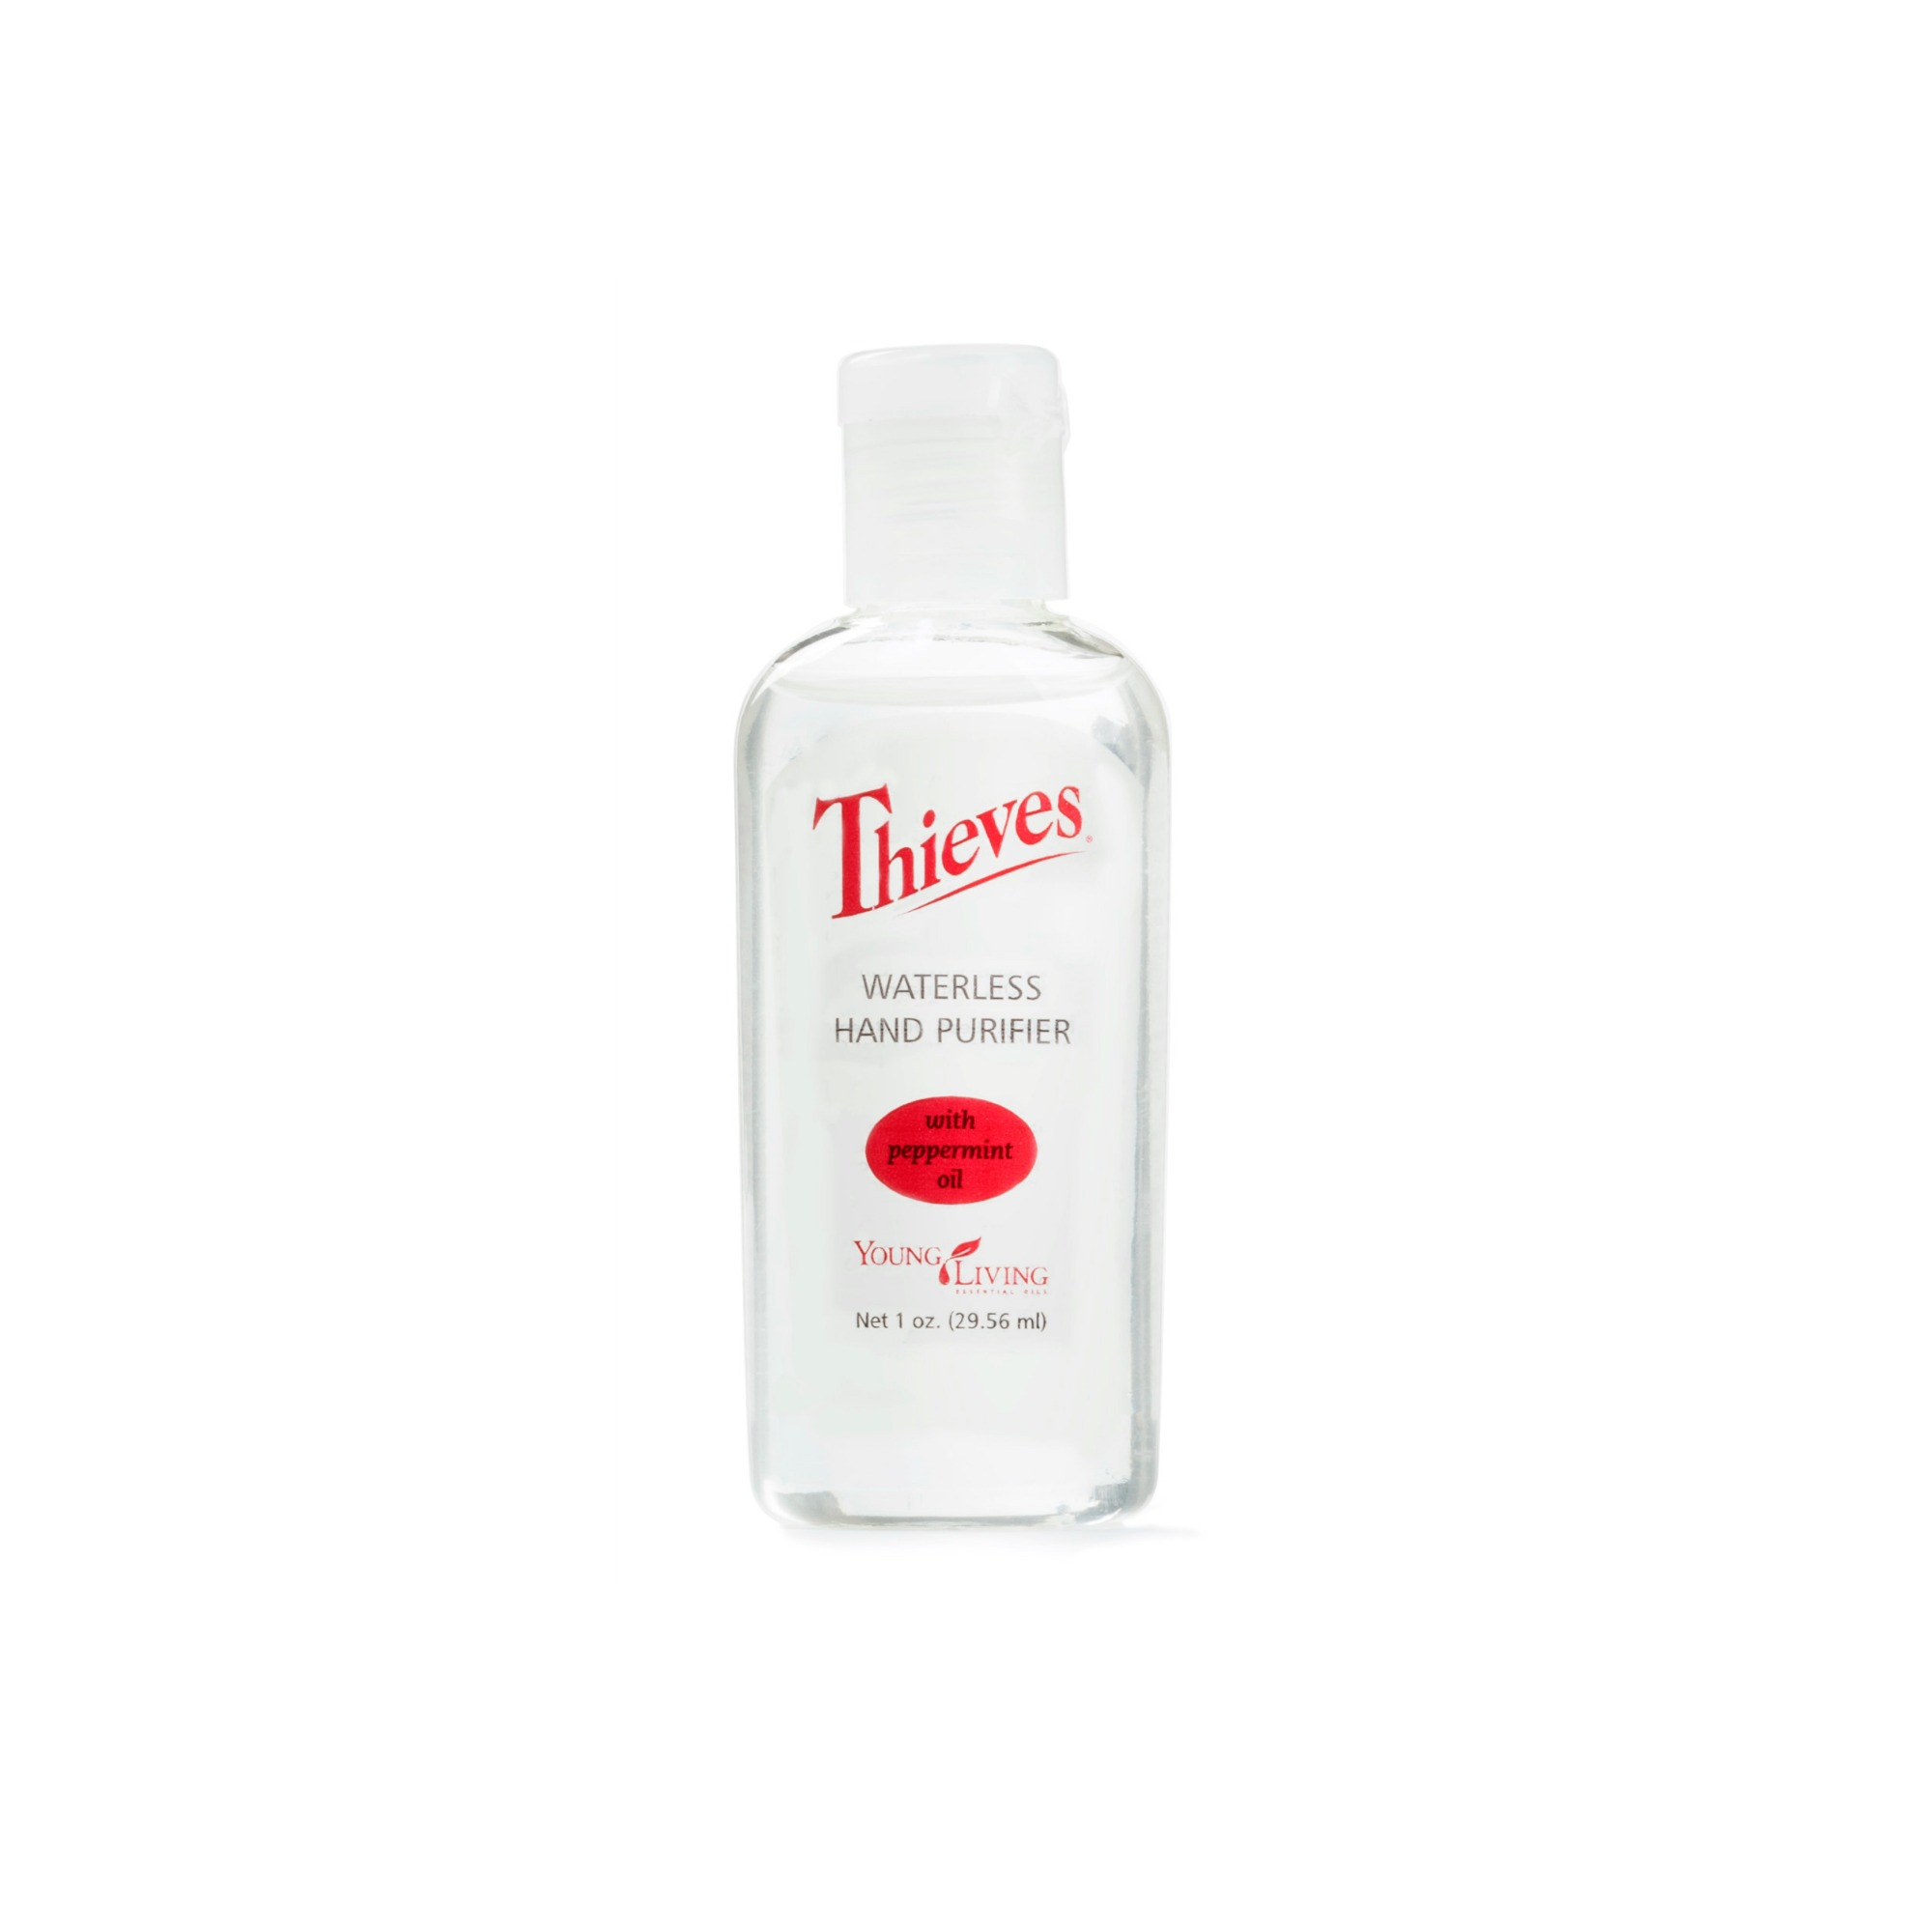 THIEVES HAND PURIFIER    This is a quick, convenient, purse-friendly fix for clean hands anywhere. Infused with Thieves and Peppermint essential oils, along with aloe, this hand purifier cleanses, purifies, and soothes skin, leaving a pleasant, spicy-sweet scent. Also comes in a larger size.   Click here   to learn more about this product.